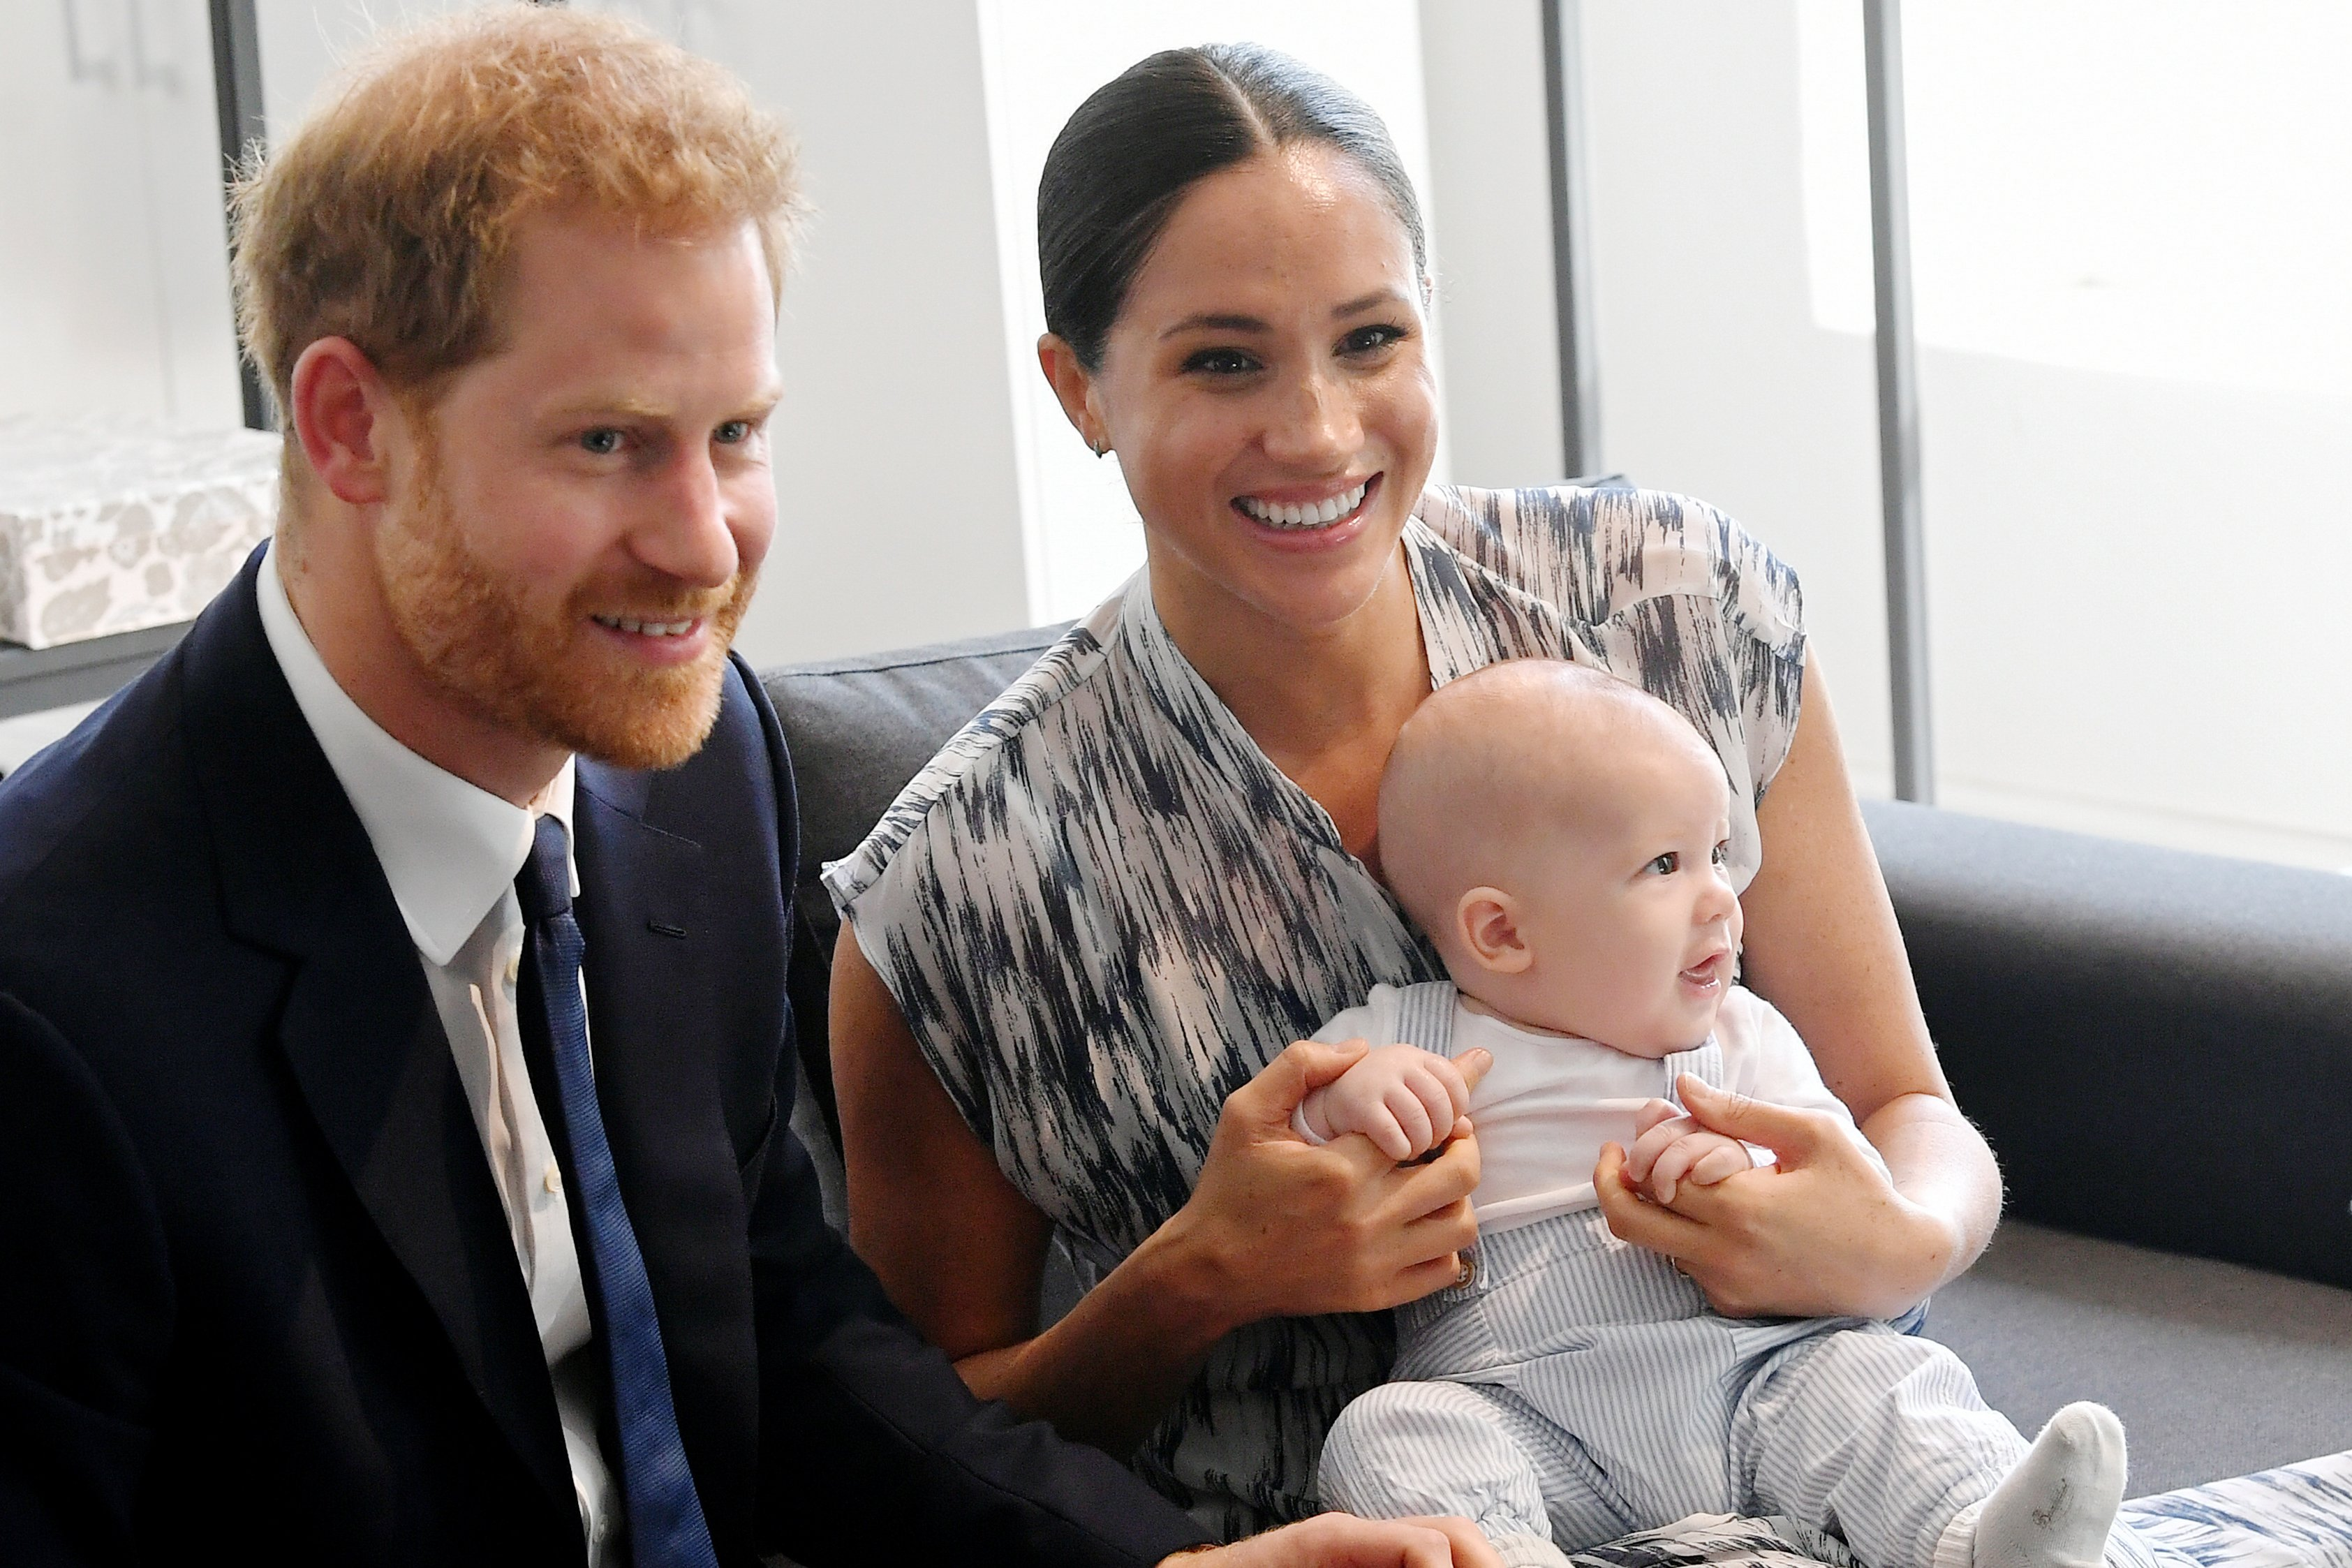 Prince Harry, Meghan, and their baby son Archie Mountbatten-Windsor during their royal tour of South Africa on September 25, 2019, in Cape Town, South Africa. | Source: Getty Images.